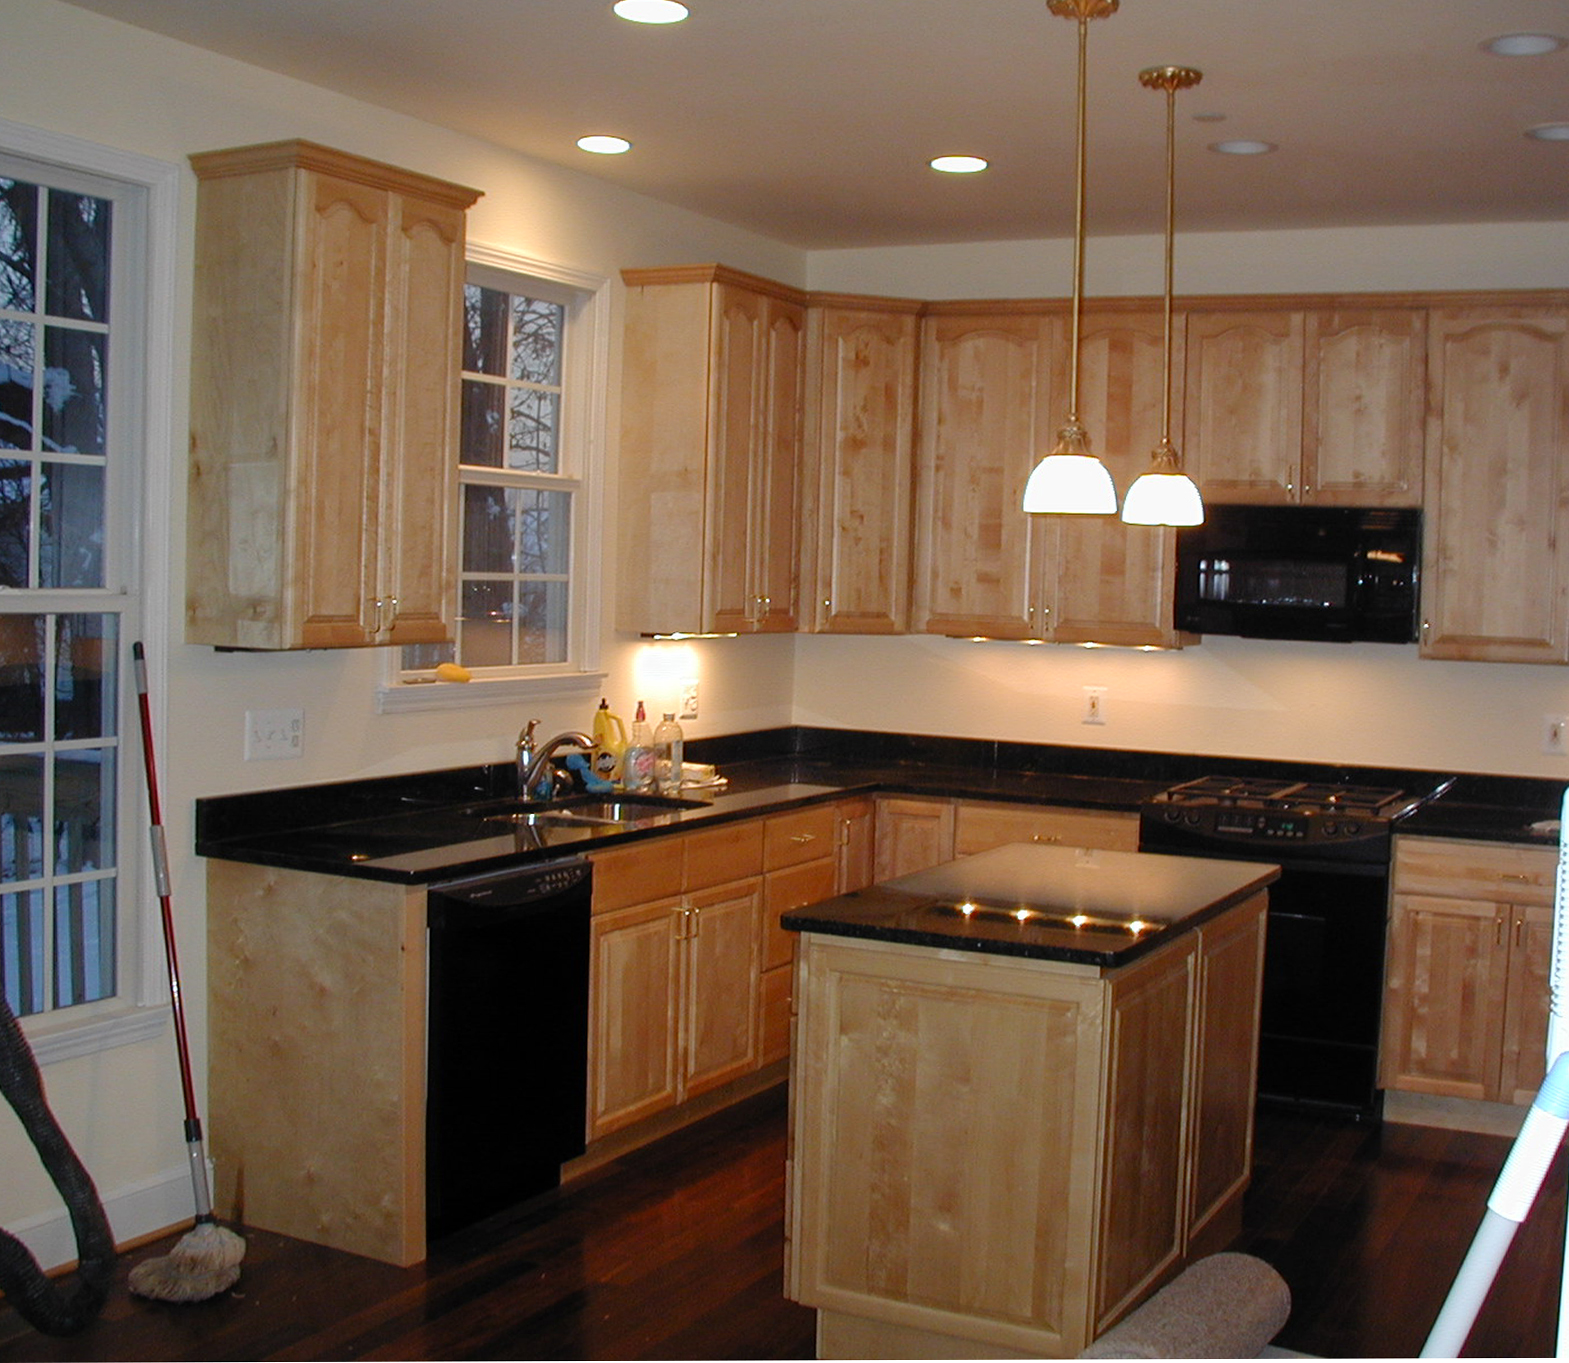 Spring Kitchen Cary: Montgomery County Electrician